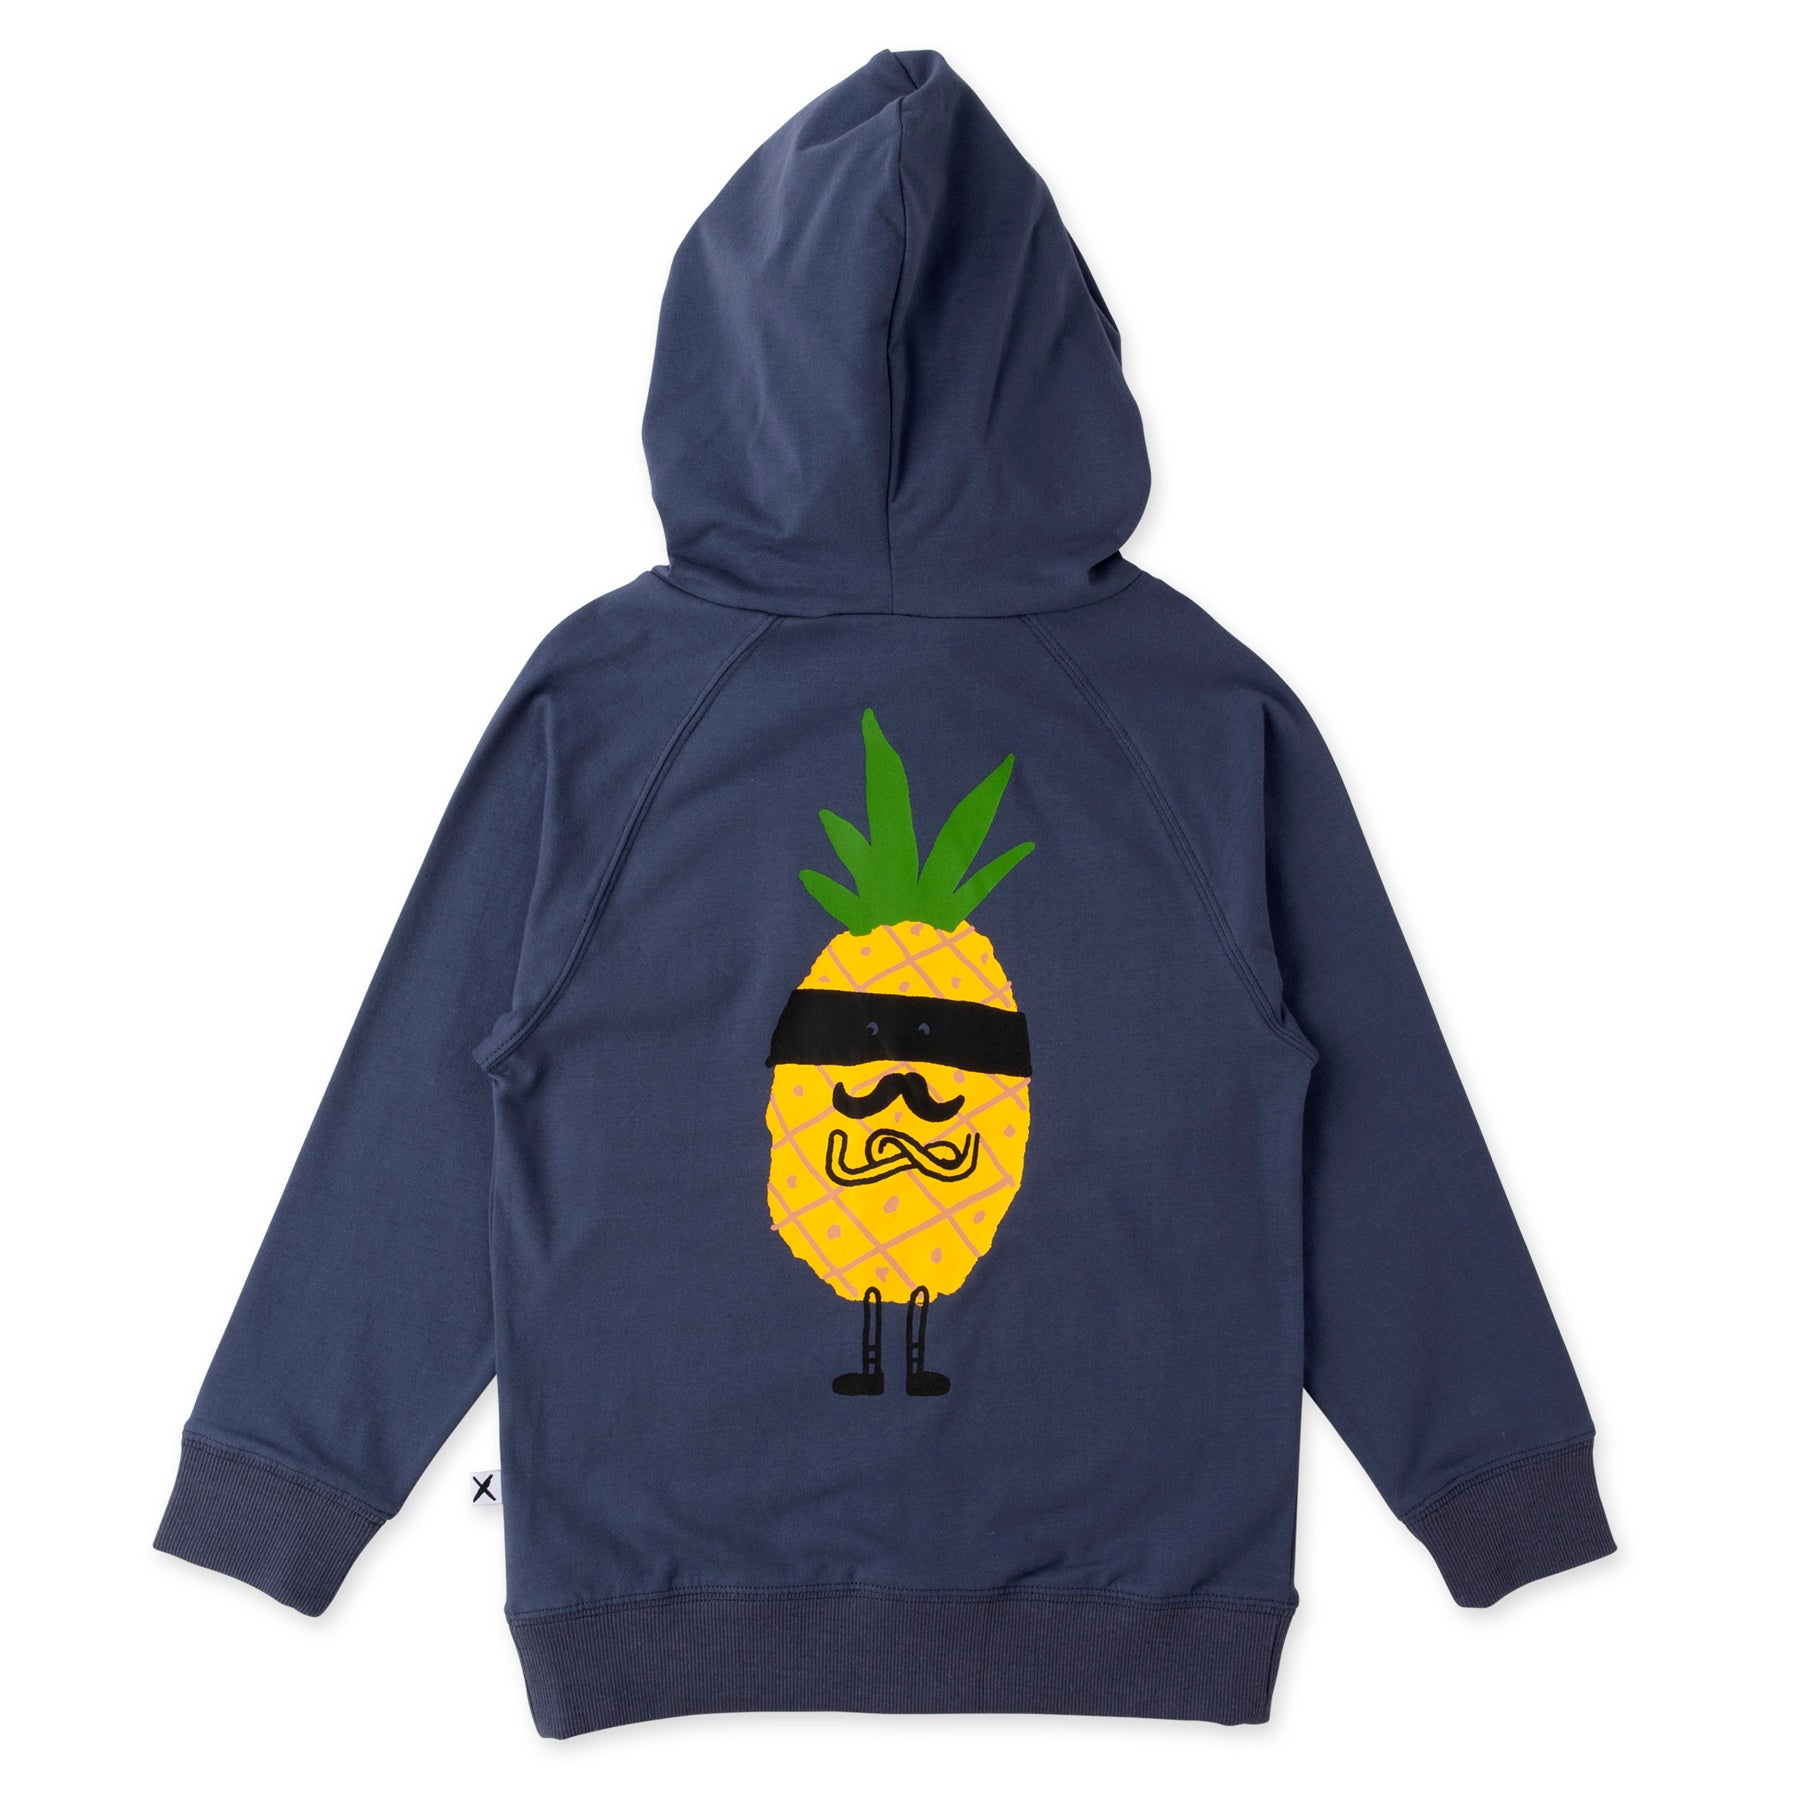 Undercover Pineapple Zip Up